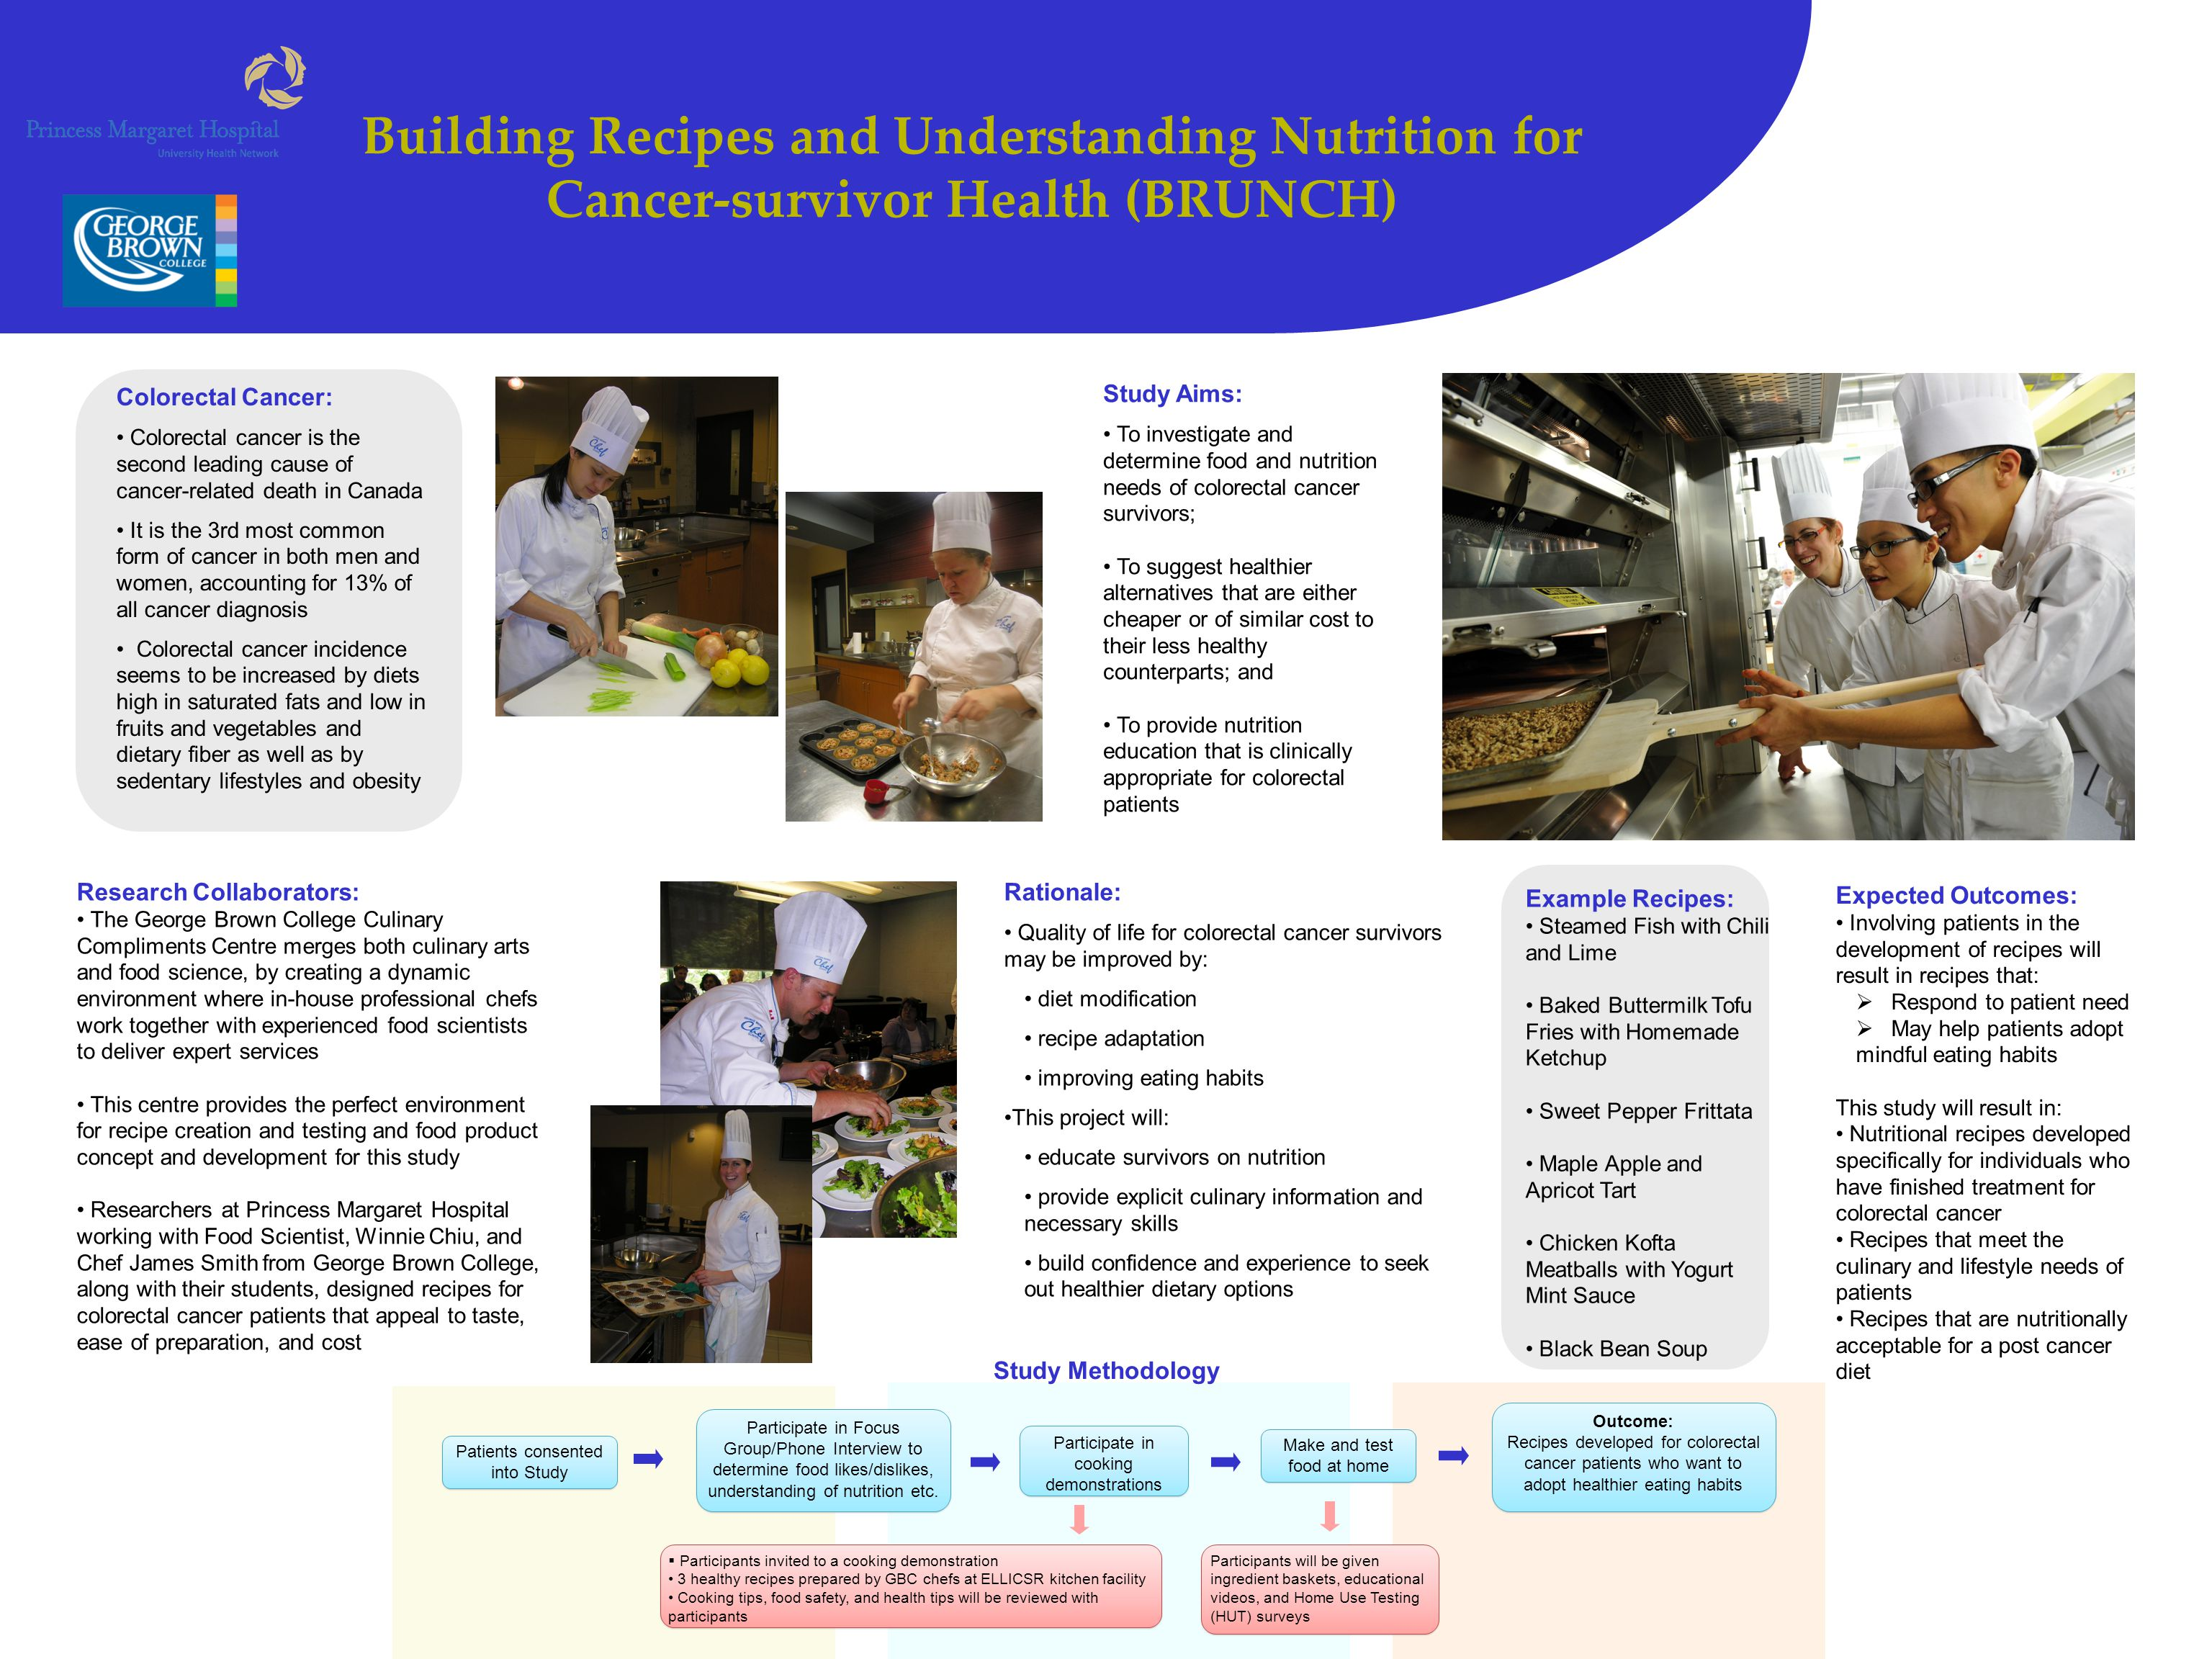 Building Recipes and Understanding Nutrition for Cancer-survivor Health (BRUNCH) Study Aims: To investigate and determine food and nutrition needs of colorectal cancer survivors; To suggest healthier alternatives that are either cheaper or of similar cost to their less healthy counterparts; and To provide nutrition education that is clinically appropriate for colorectal patients Patients consented into Study Participate in Focus Group/Phone Interview to determine food likes/dislikes, understanding of nutrition etc.